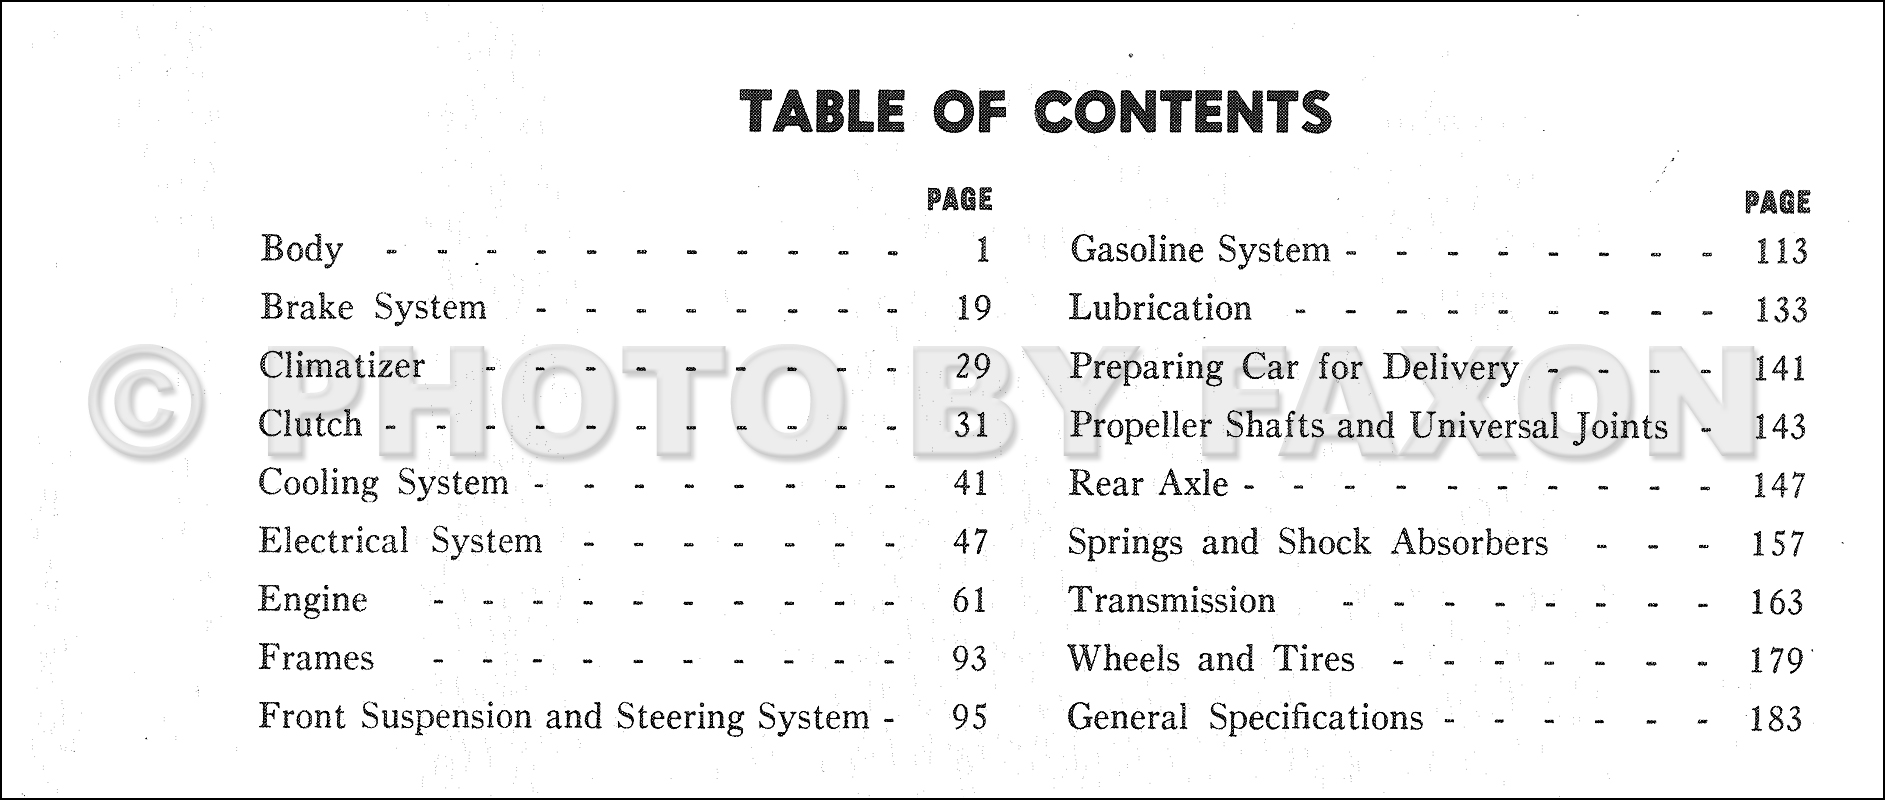 1947 Studebaker Champion Wiring Diagram Lincoln Continental 1950 On 1951